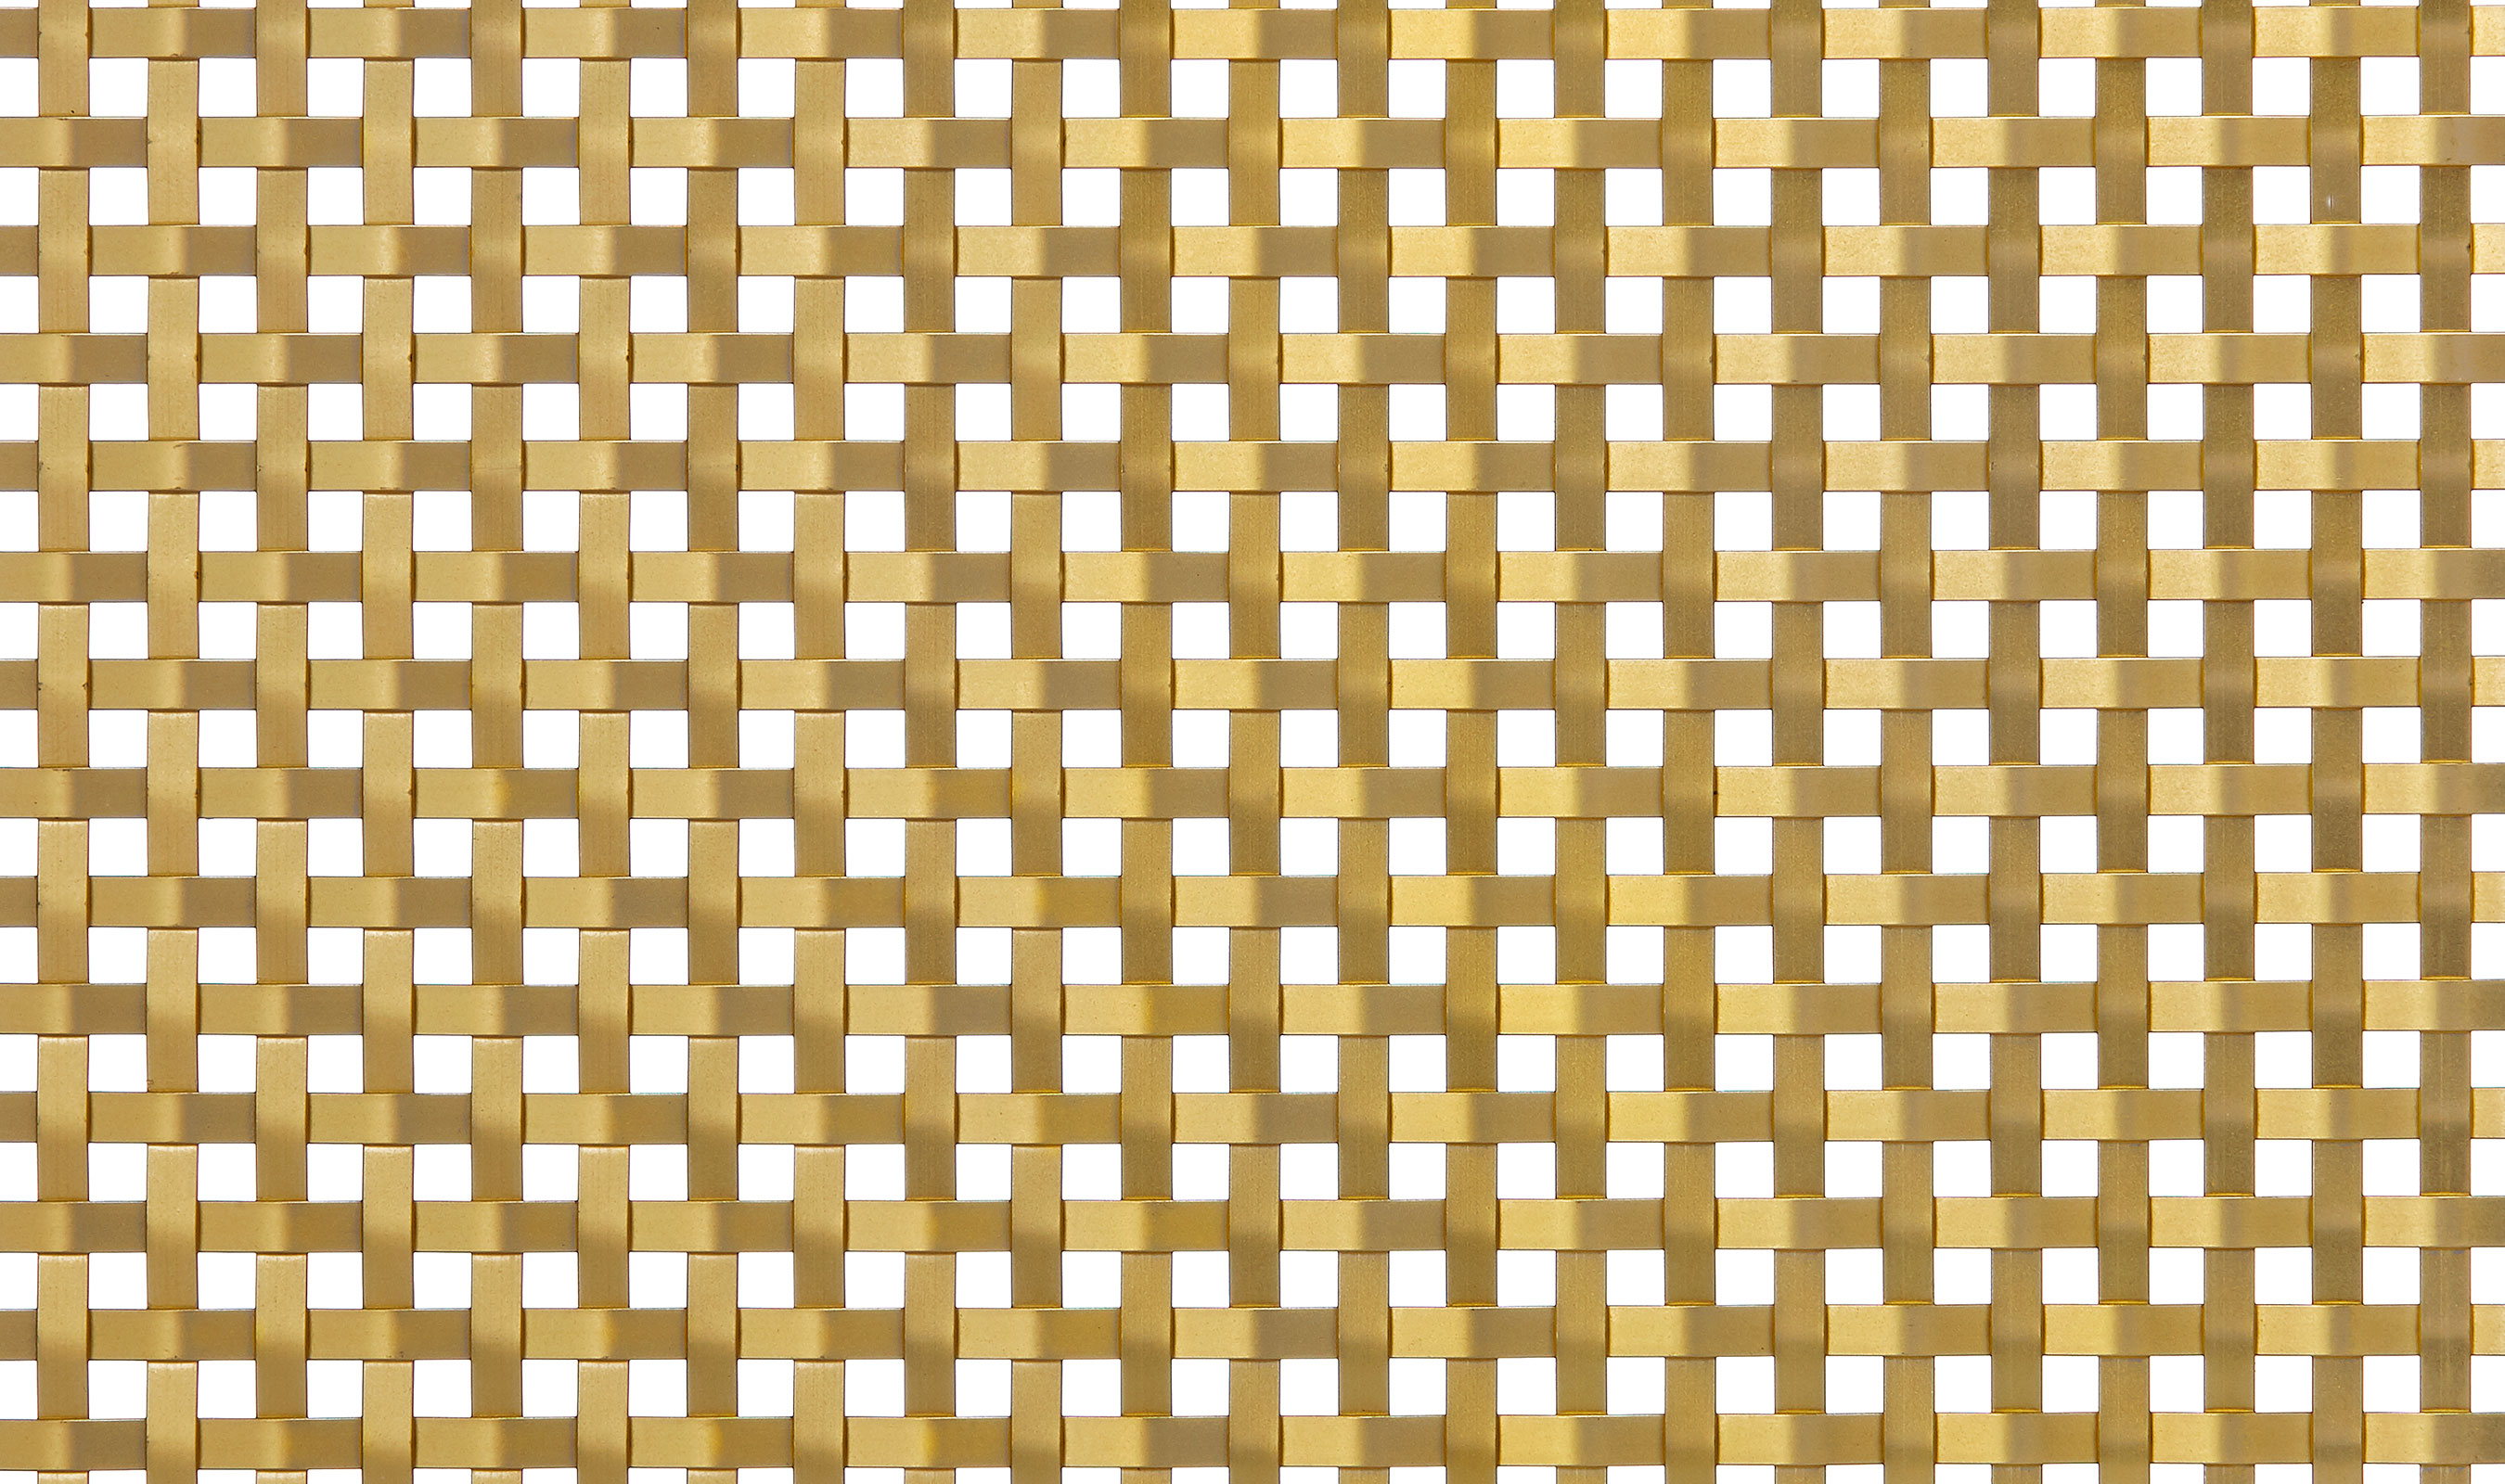 S-30 Satin Brass Plated wire mesh pattern